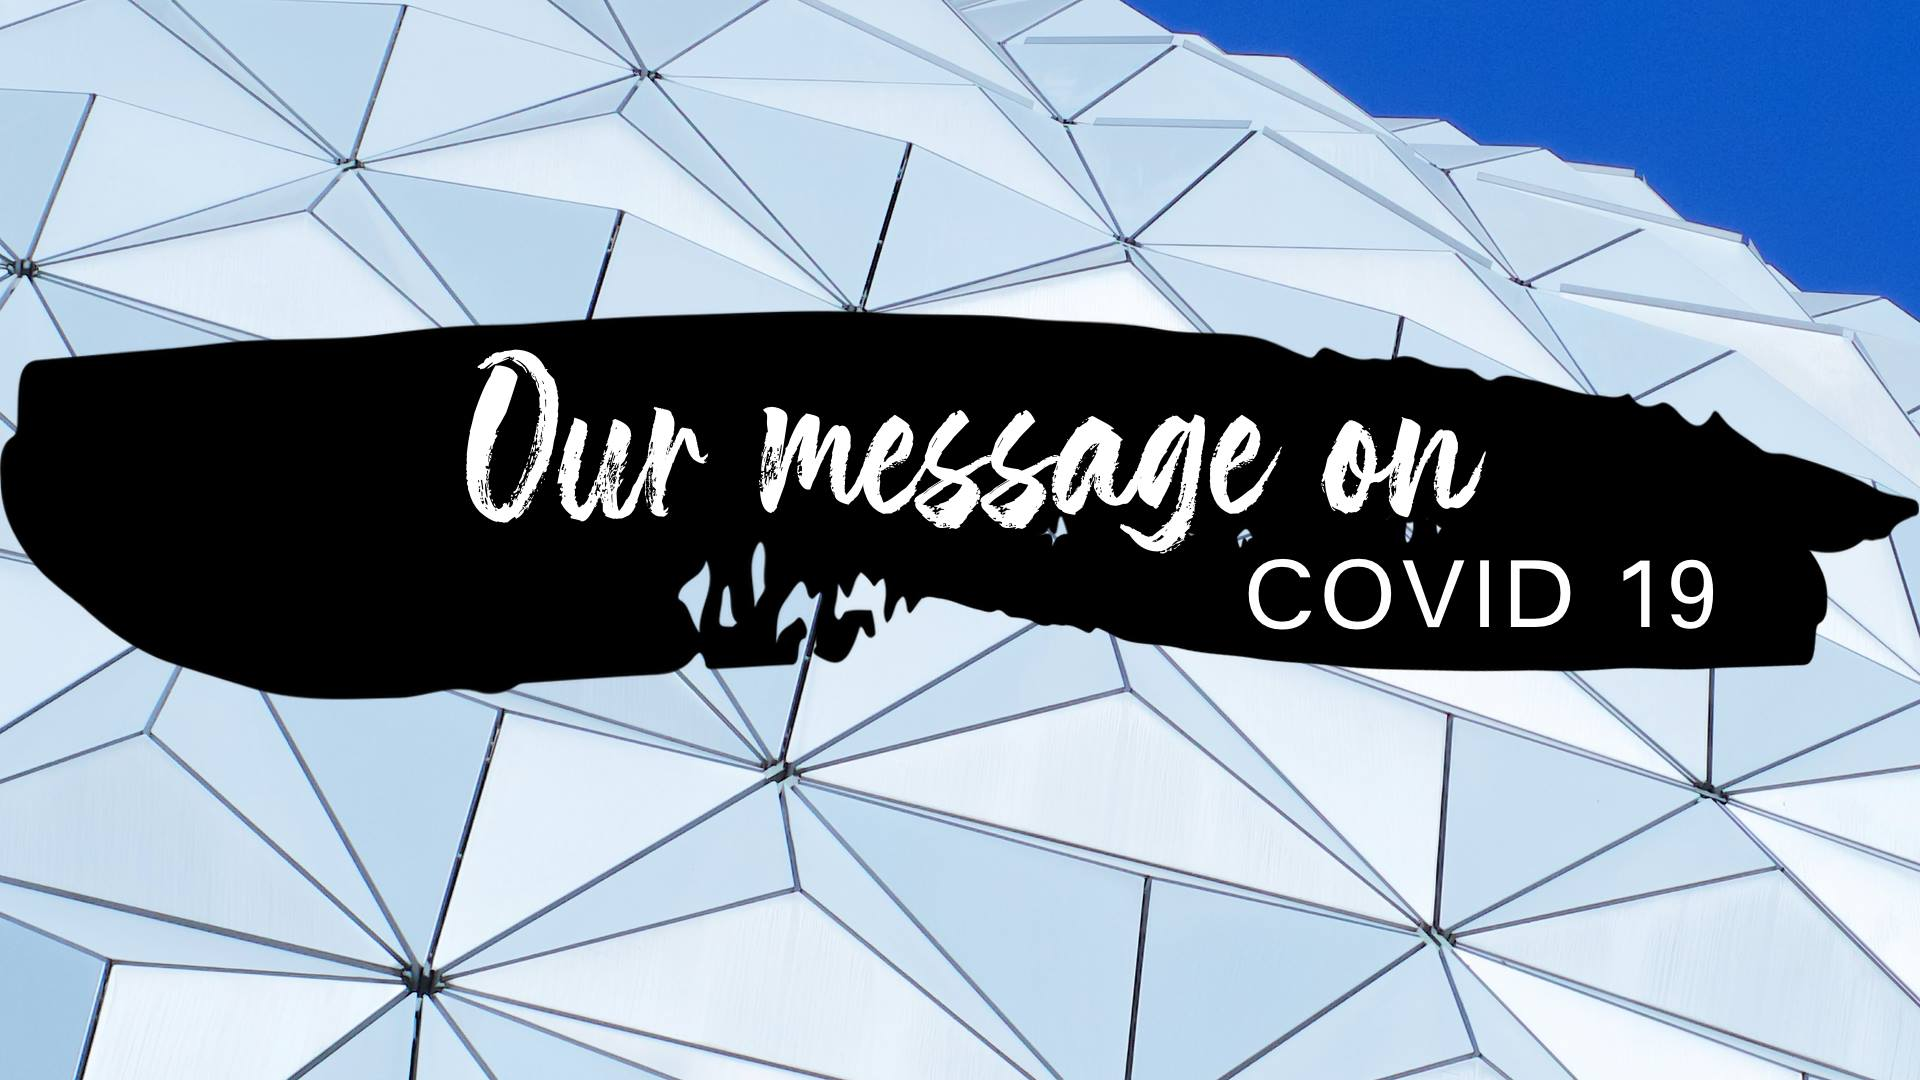 Our message on Covid 19